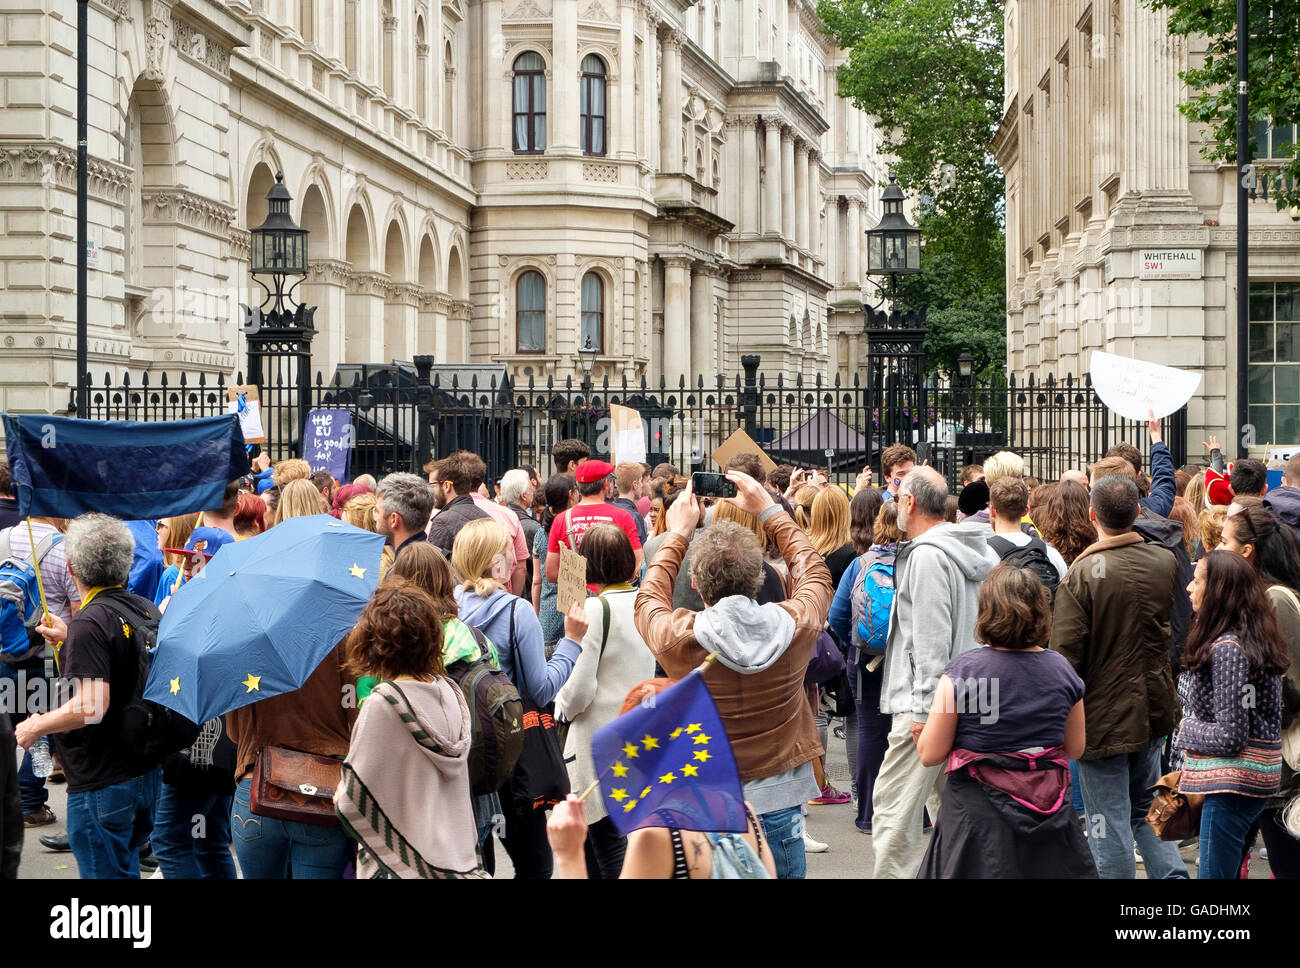 London, UK , 2 July 2016: Protesters on the March for Europe demonstration at 10 Downing Street - Stock Image